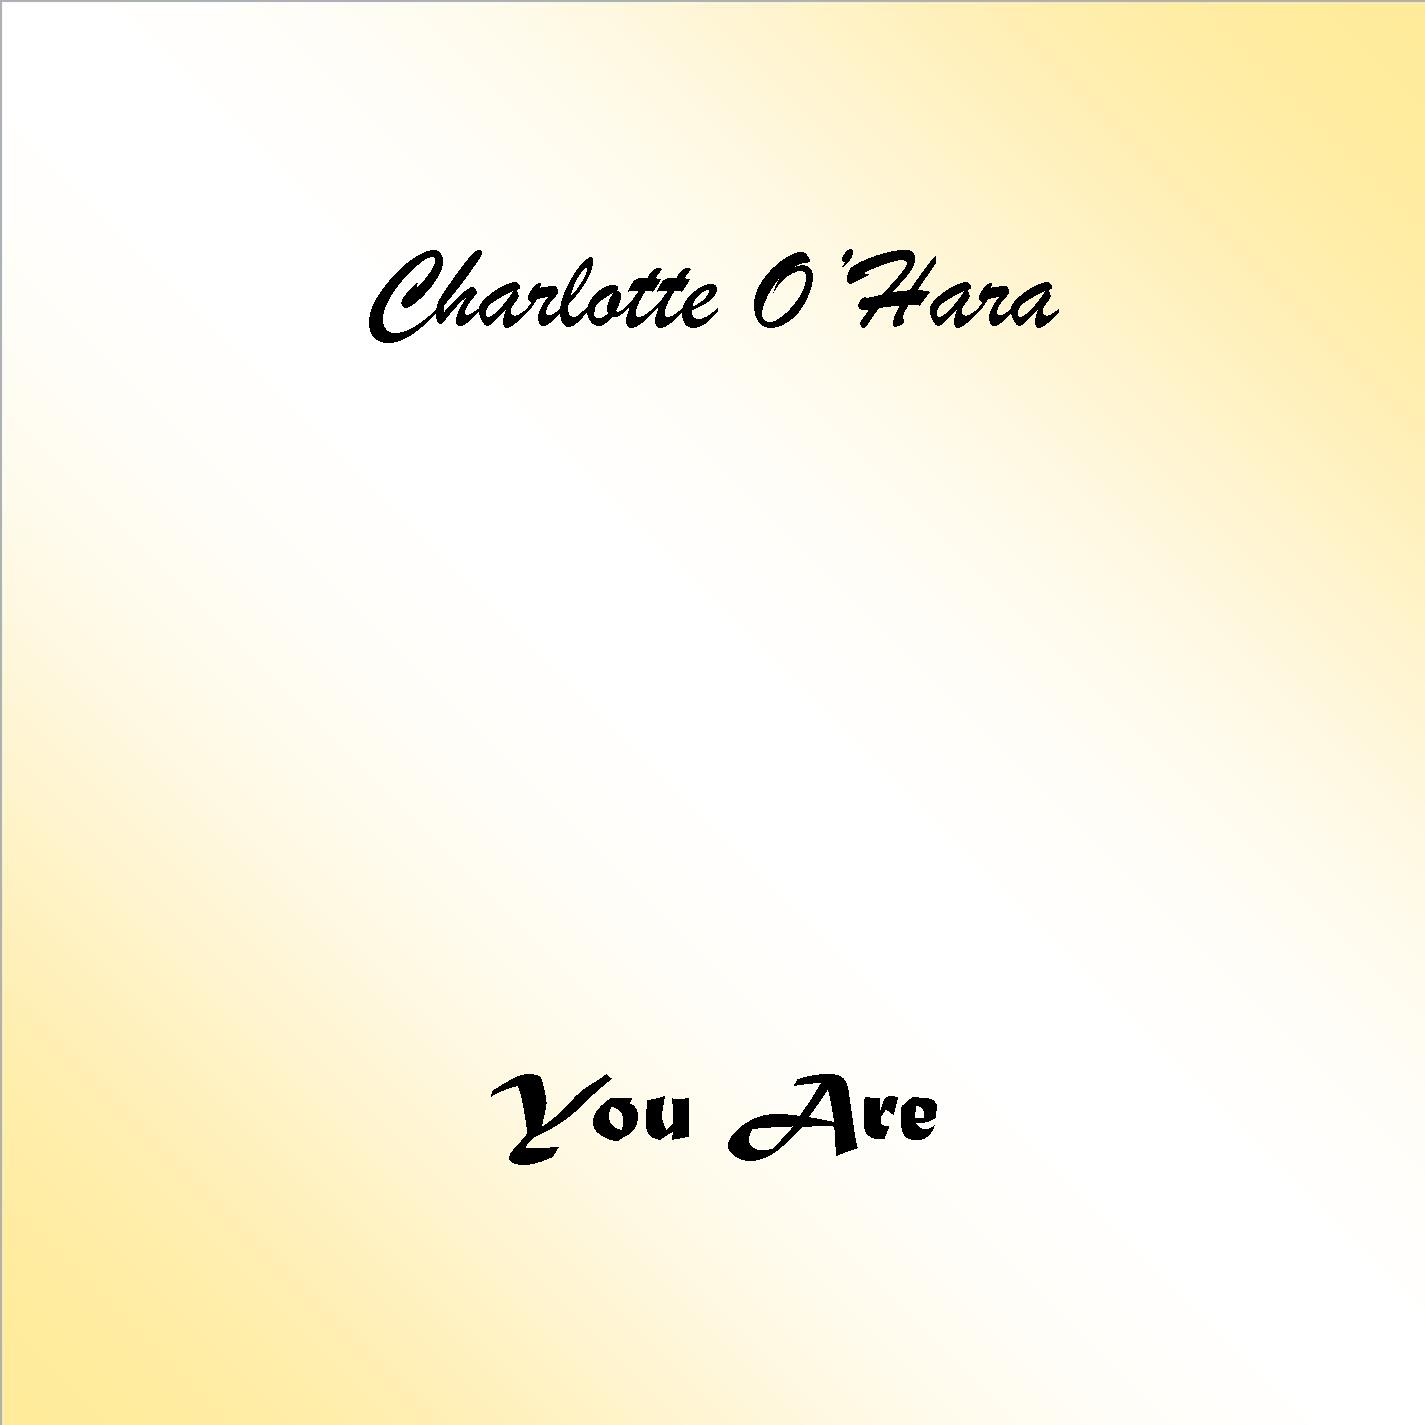 You Are cover jpeg